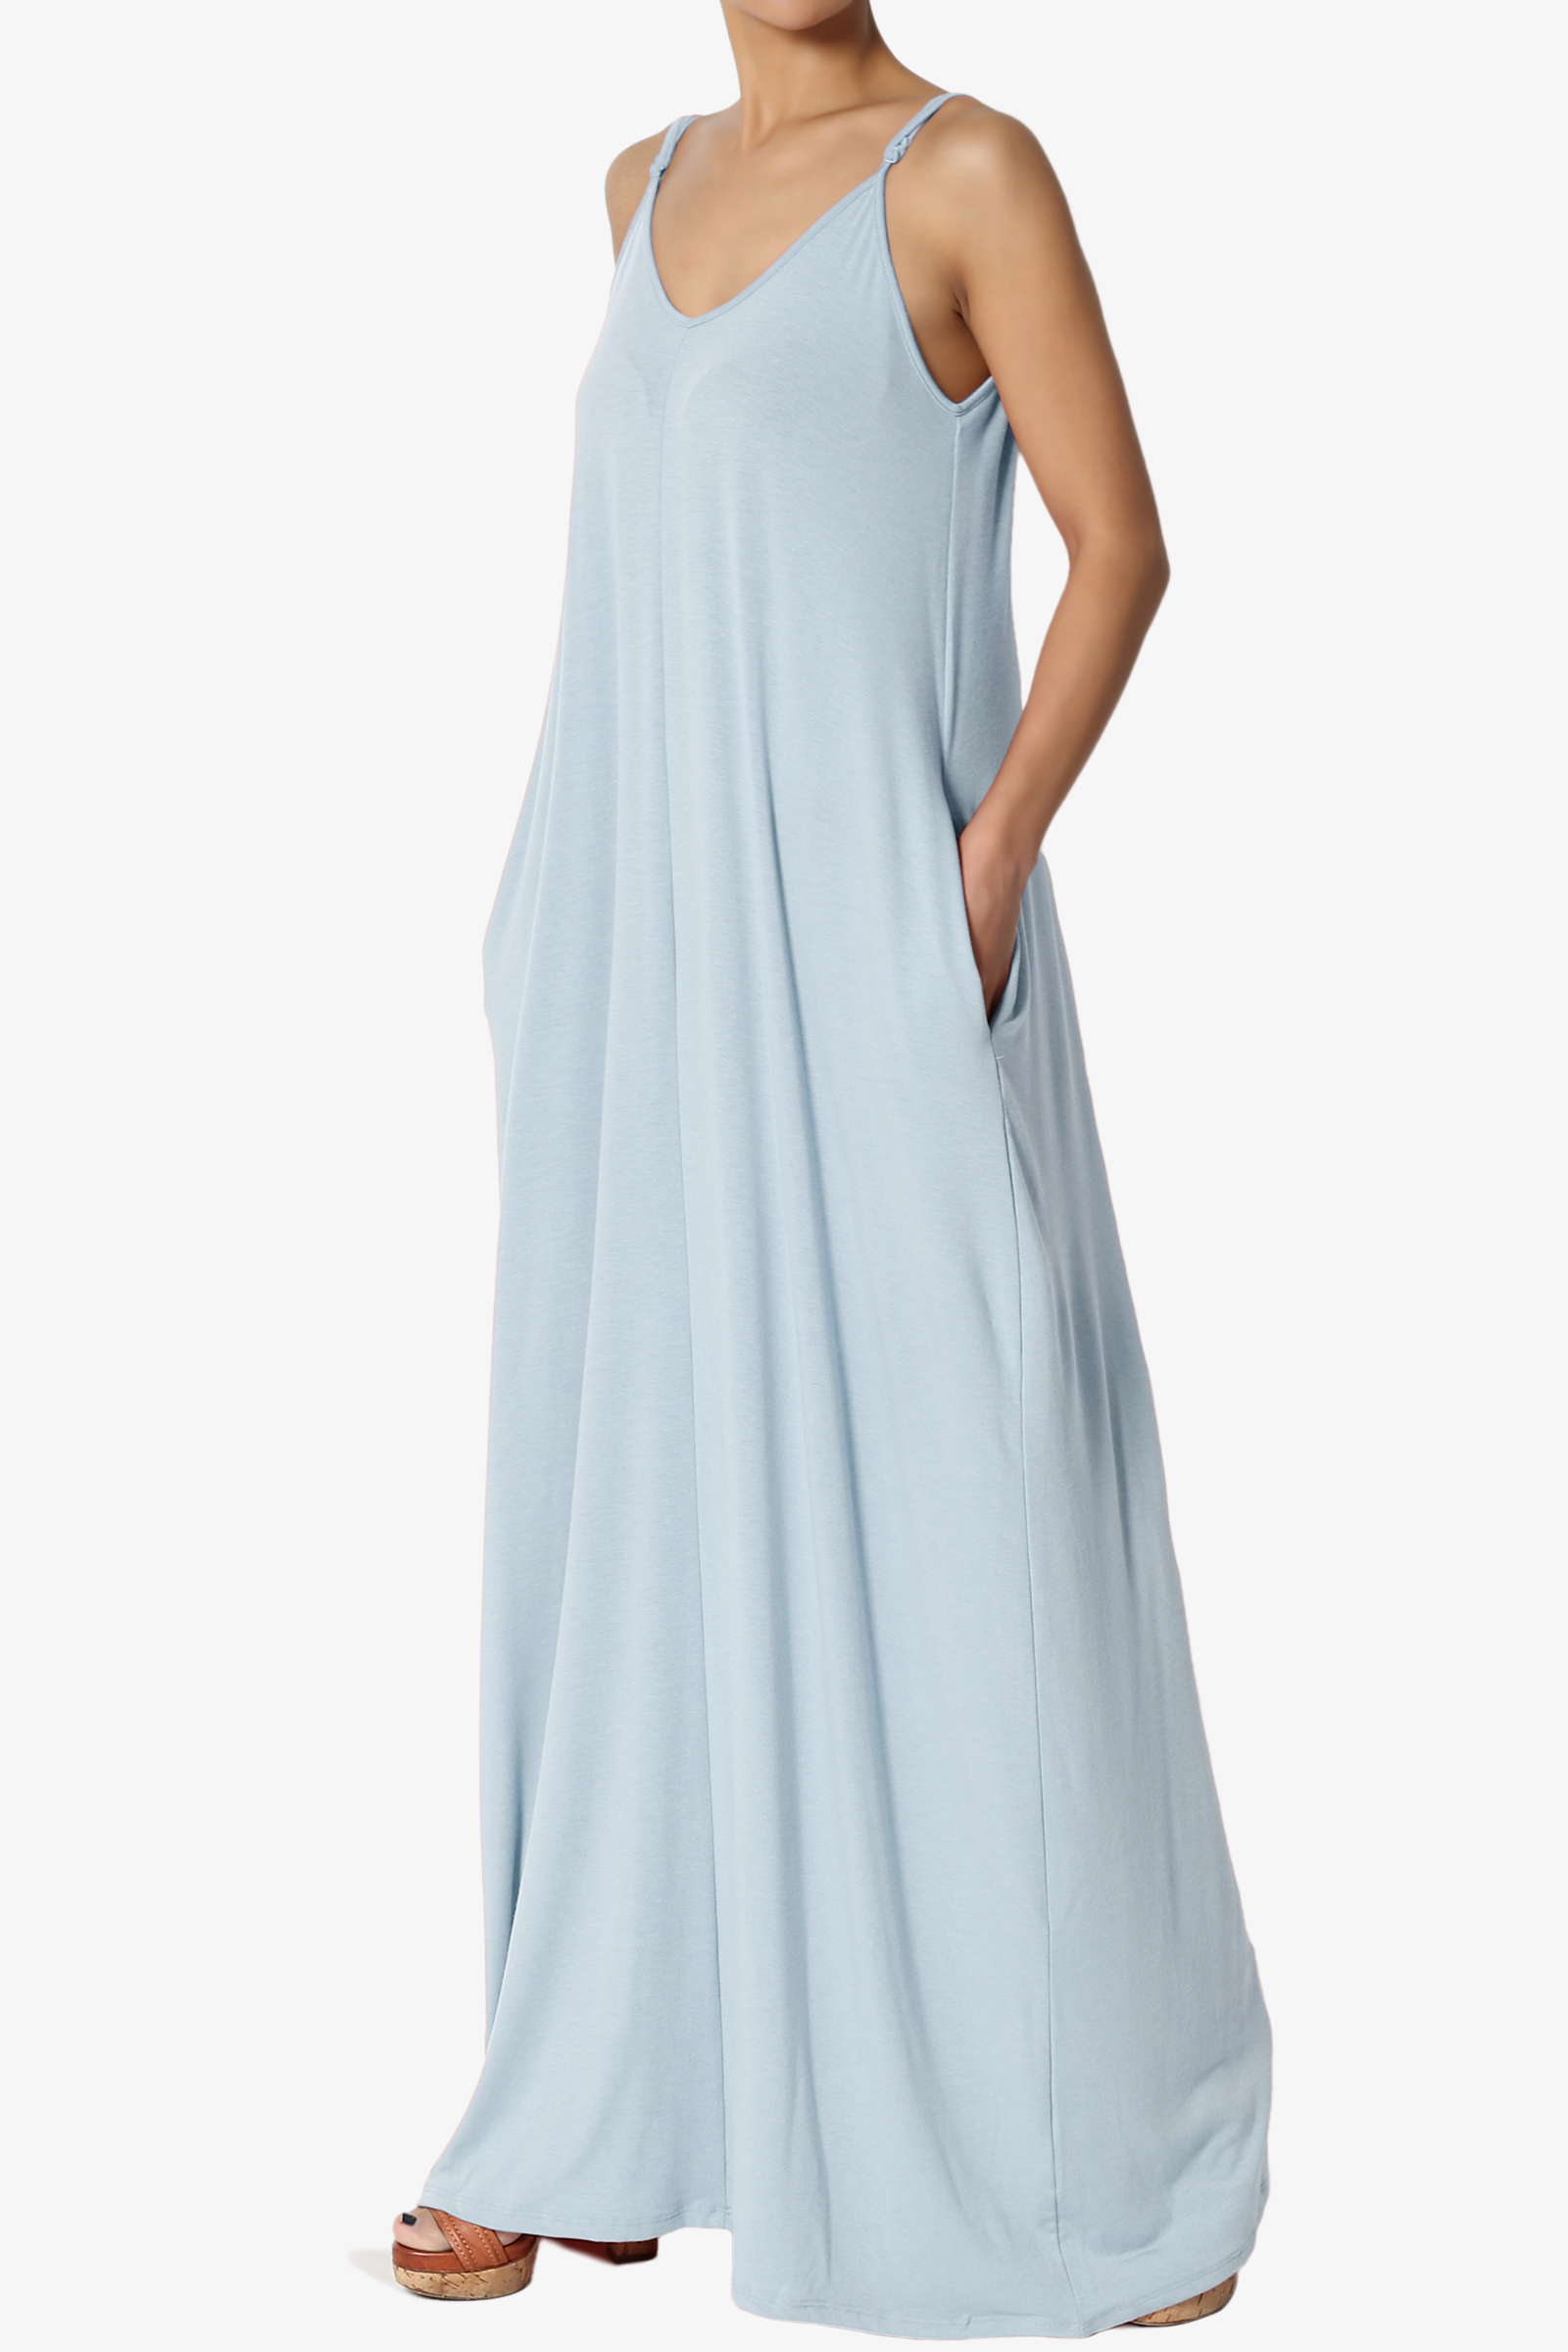 d02bf7ce05ae0 TheMogan - TheMogan Women's V-Neck Draped Jersey Casual Beach Cami Long  Maxi Dress W Pocket - Walmart.com